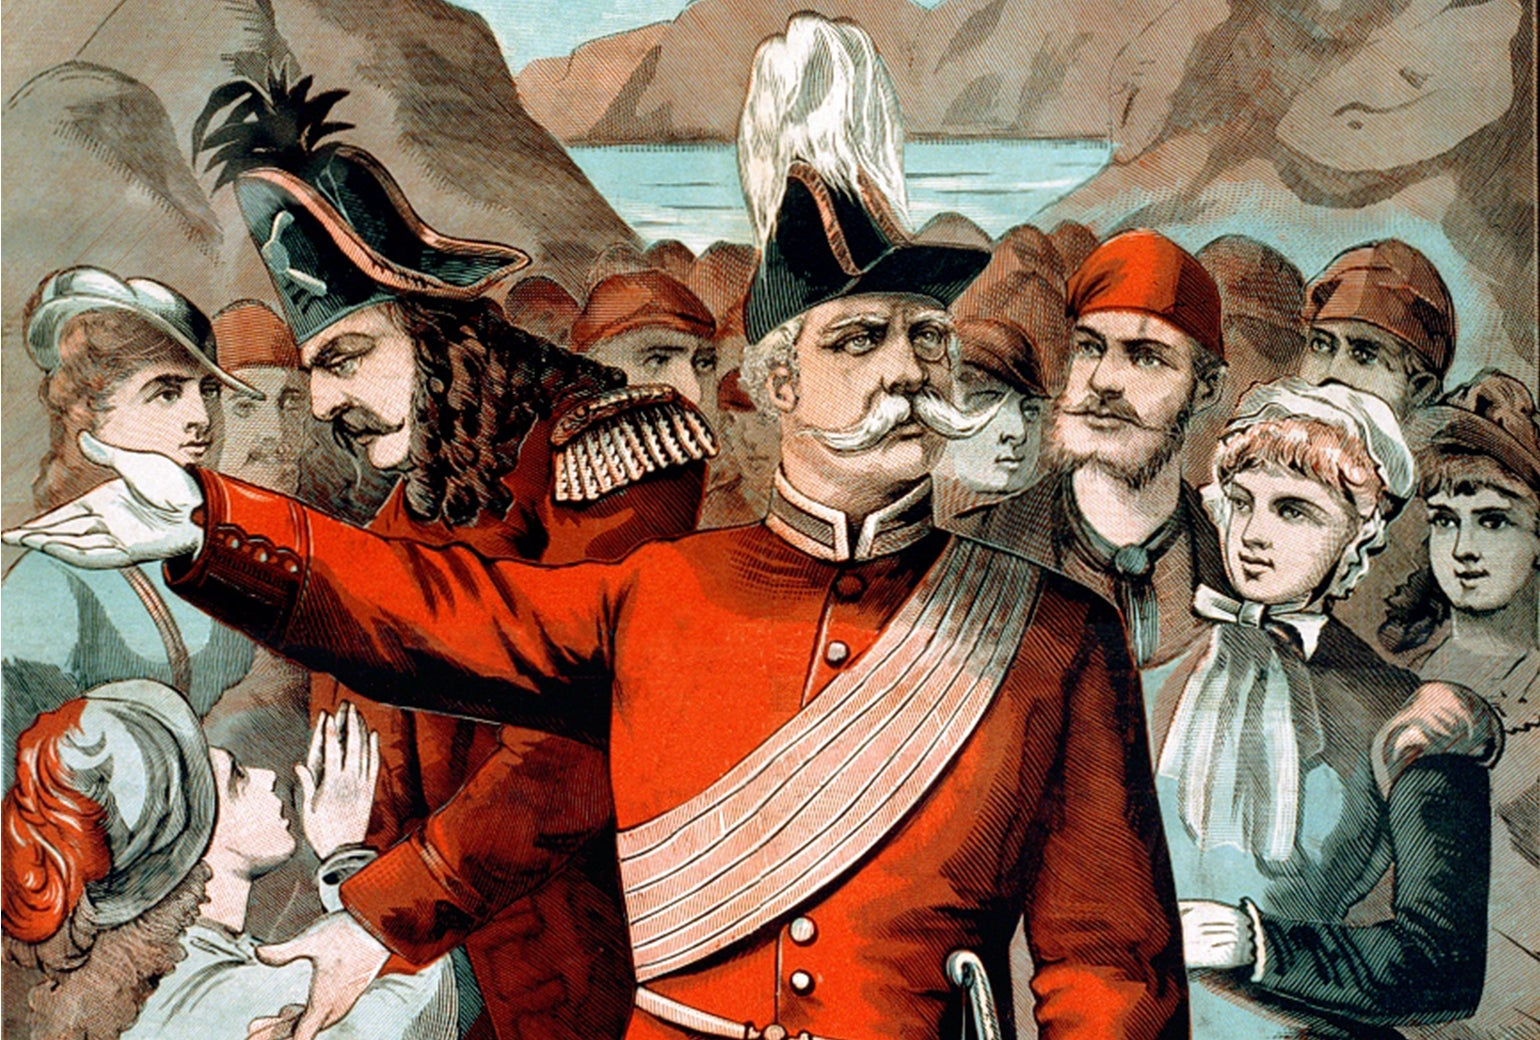 A poster from The Pirates of Penzance.